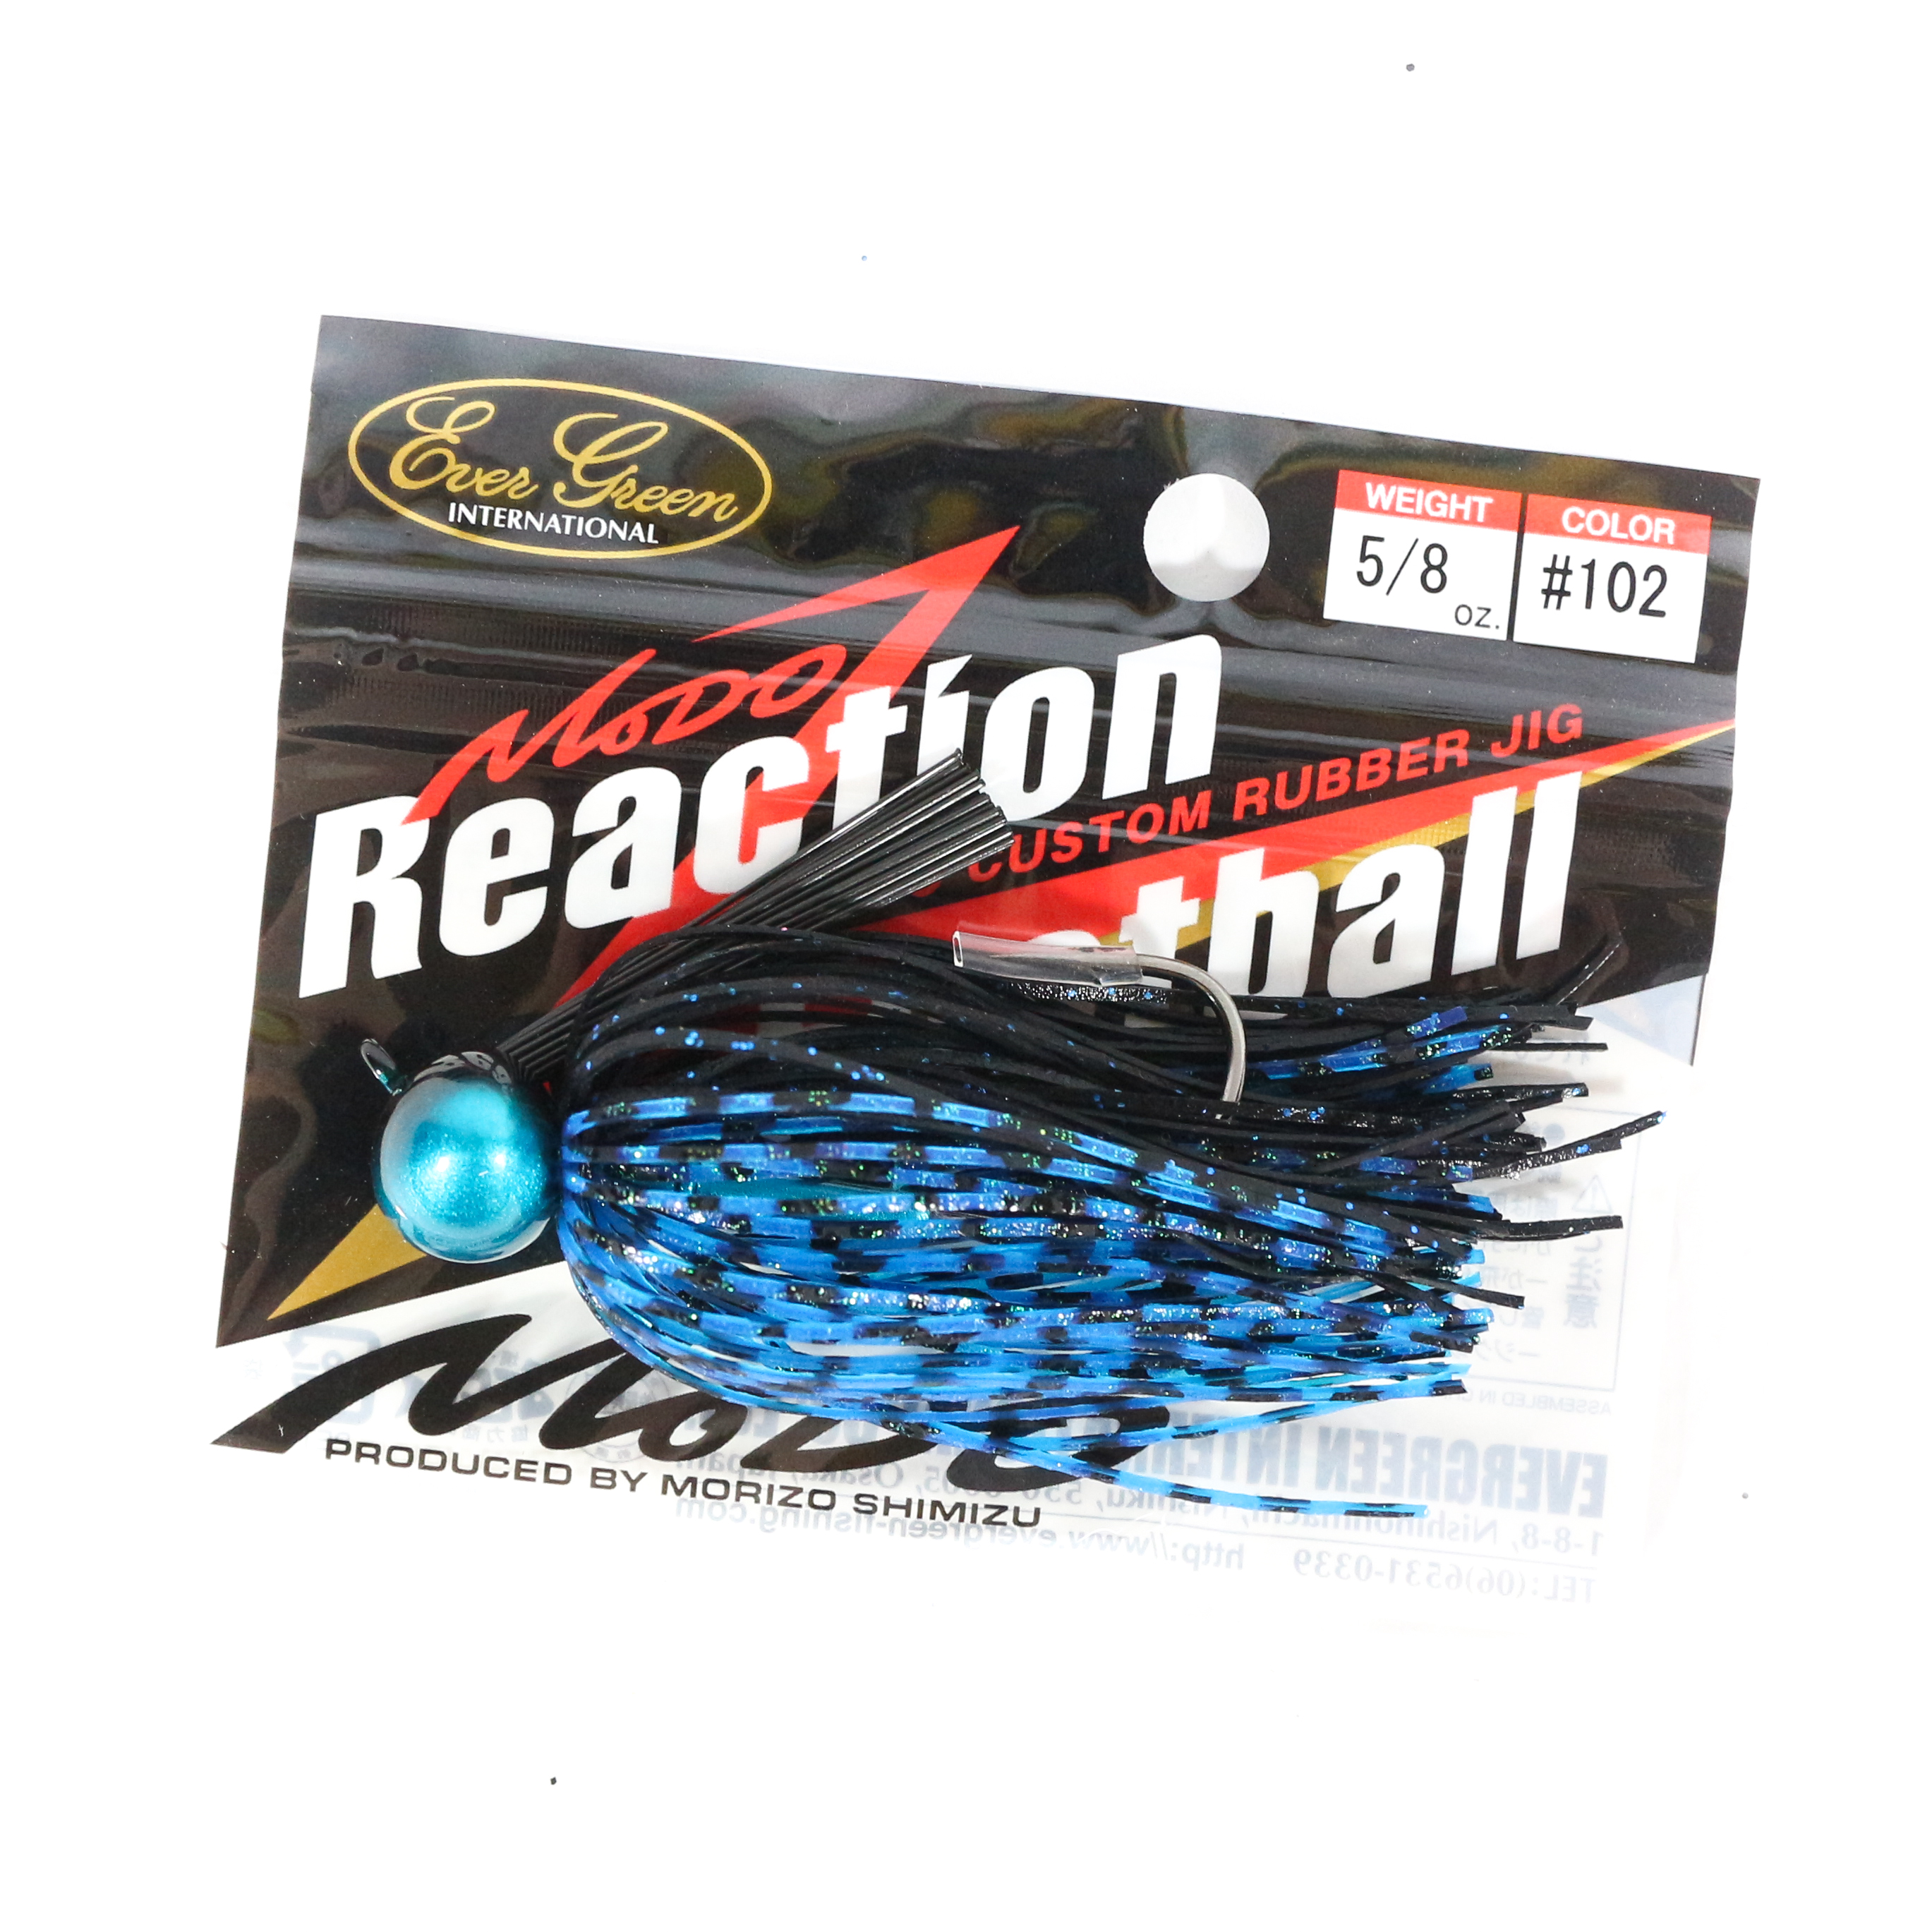 Evergreen Reaction Football Casting Jig 5/8 oz 102 (8302)